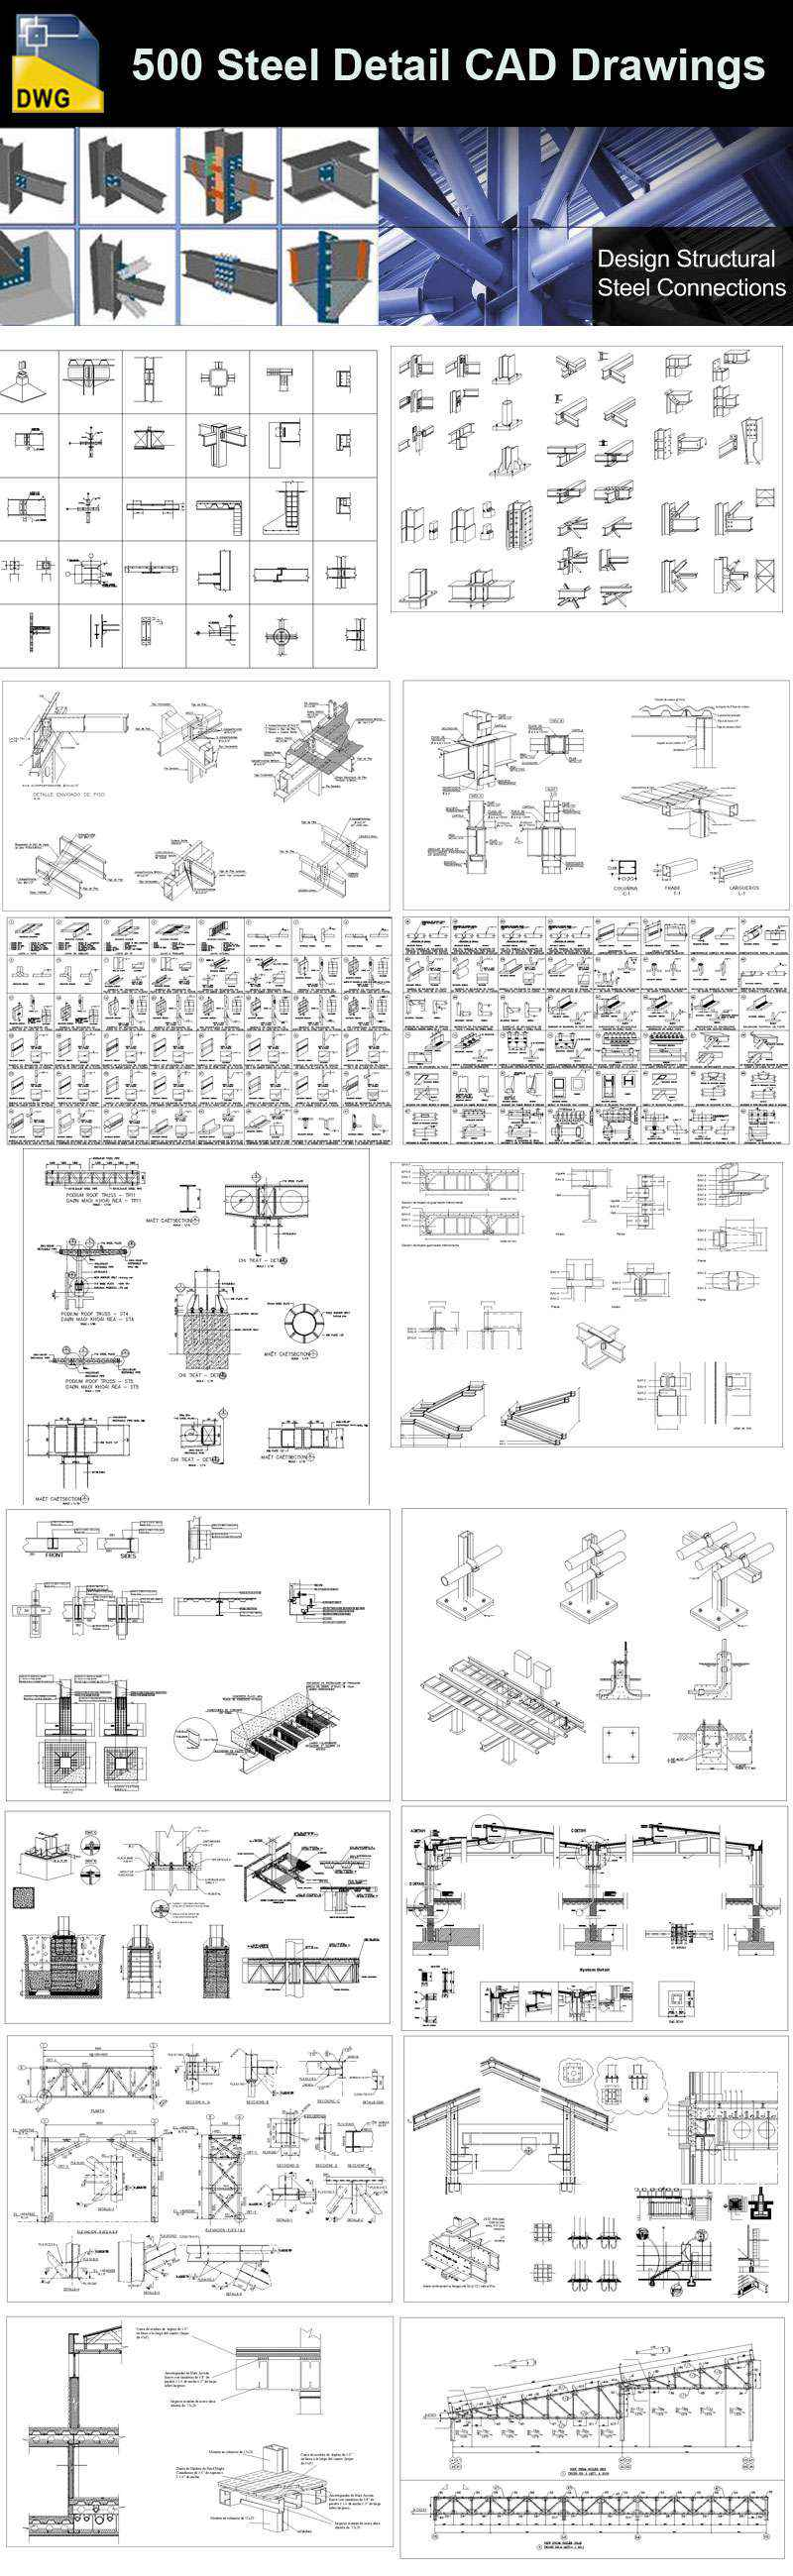 Over 500 Various Type Of Steel Structure Details Cad Drawings